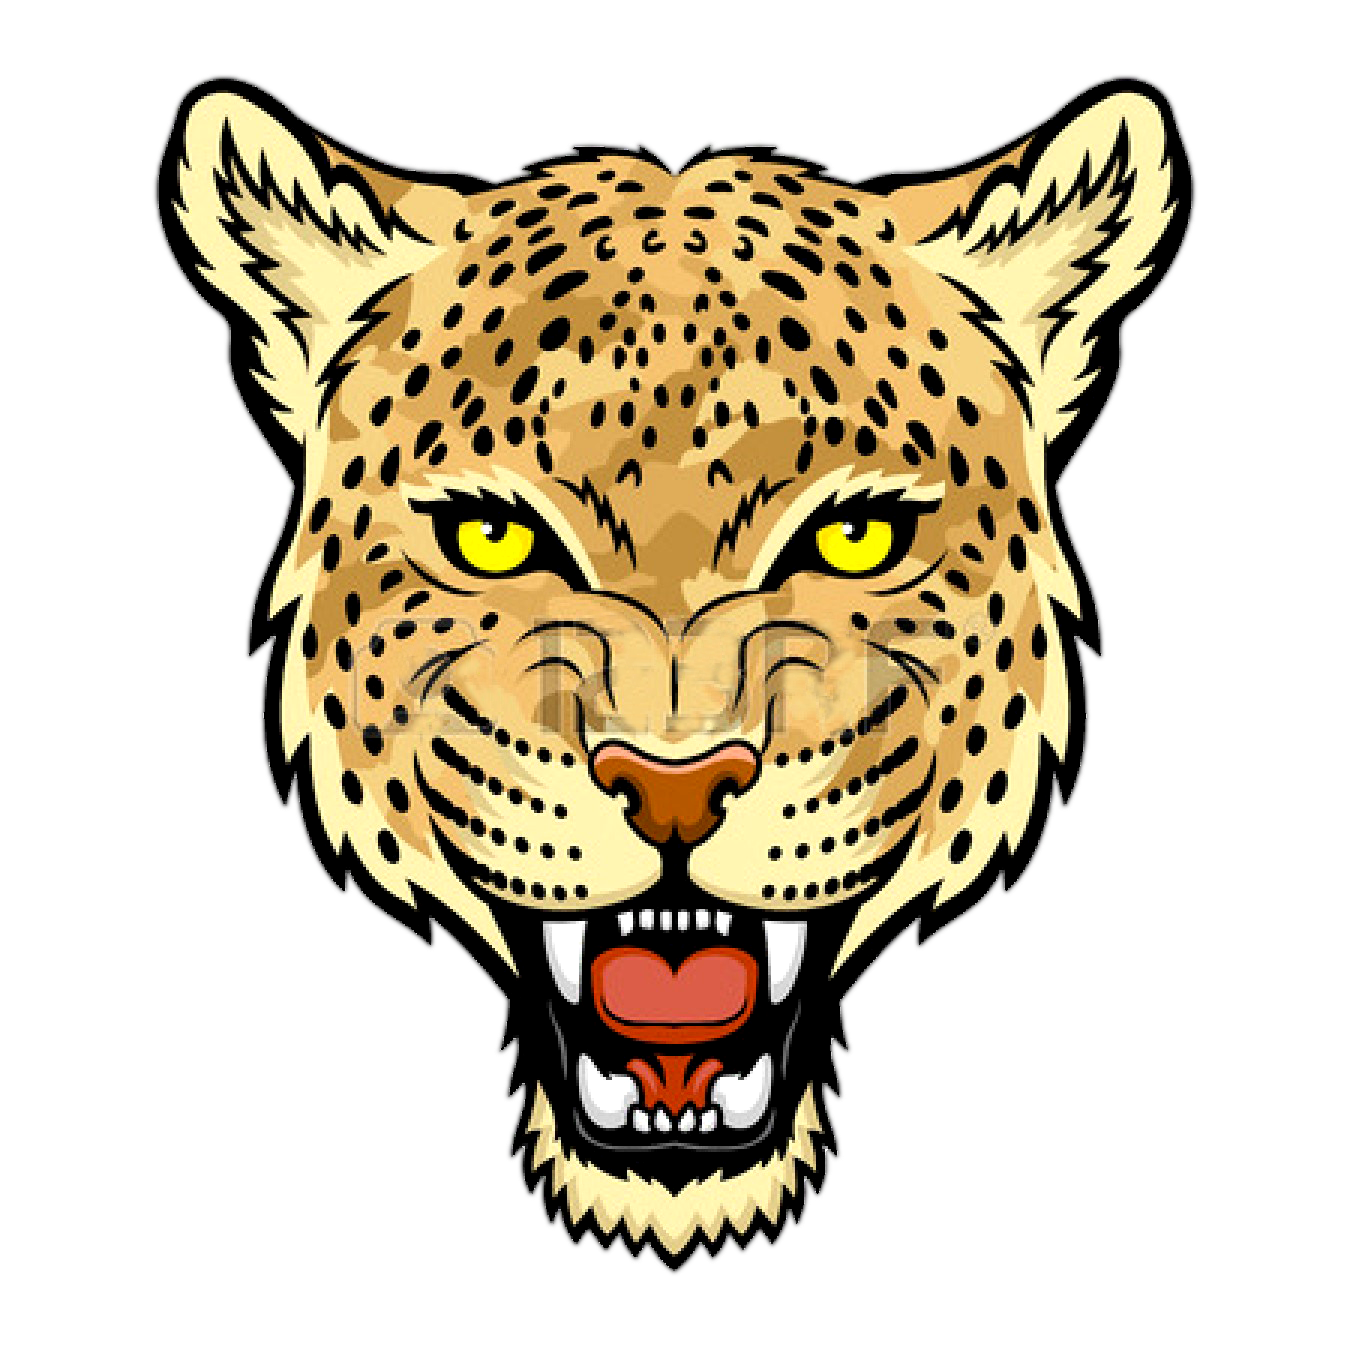 Snow cat clipart image download Snow Leopard Clipart at GetDrawings.com   Free for personal use Snow ... image download